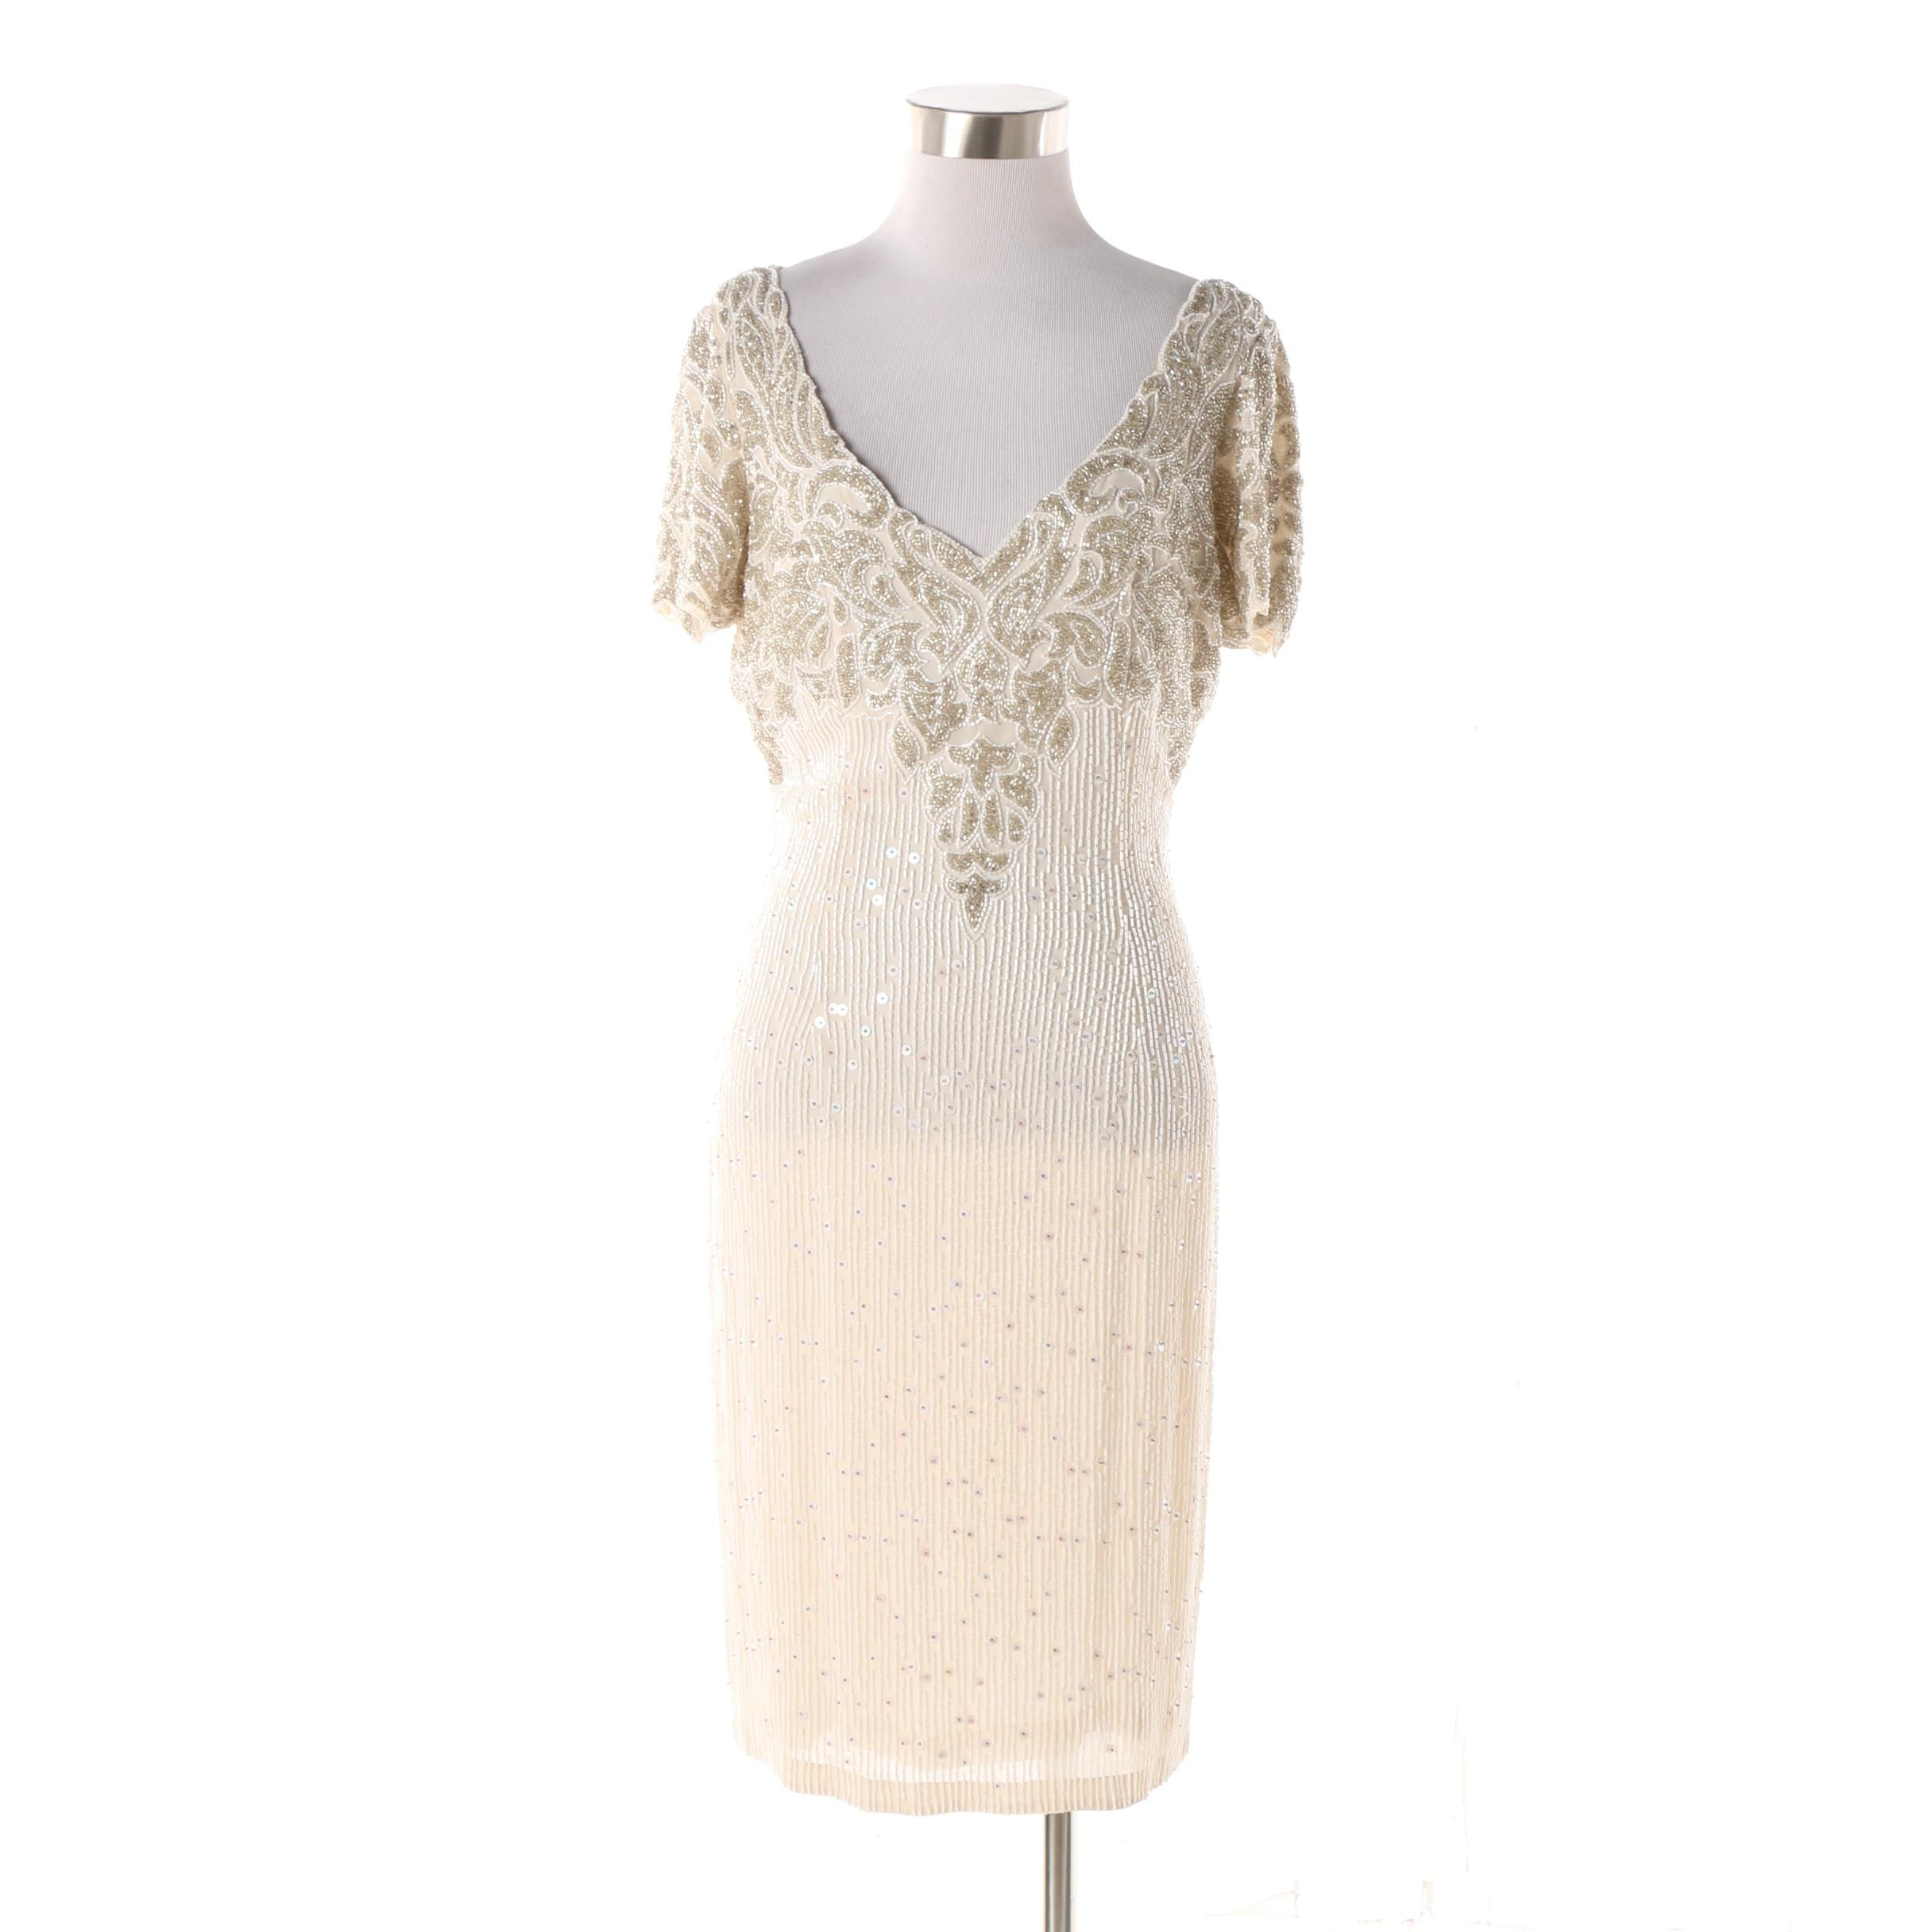 1980s Vintage Naeem Khan Riazee Nights Hand Beaded Cream Silk Evening Dress